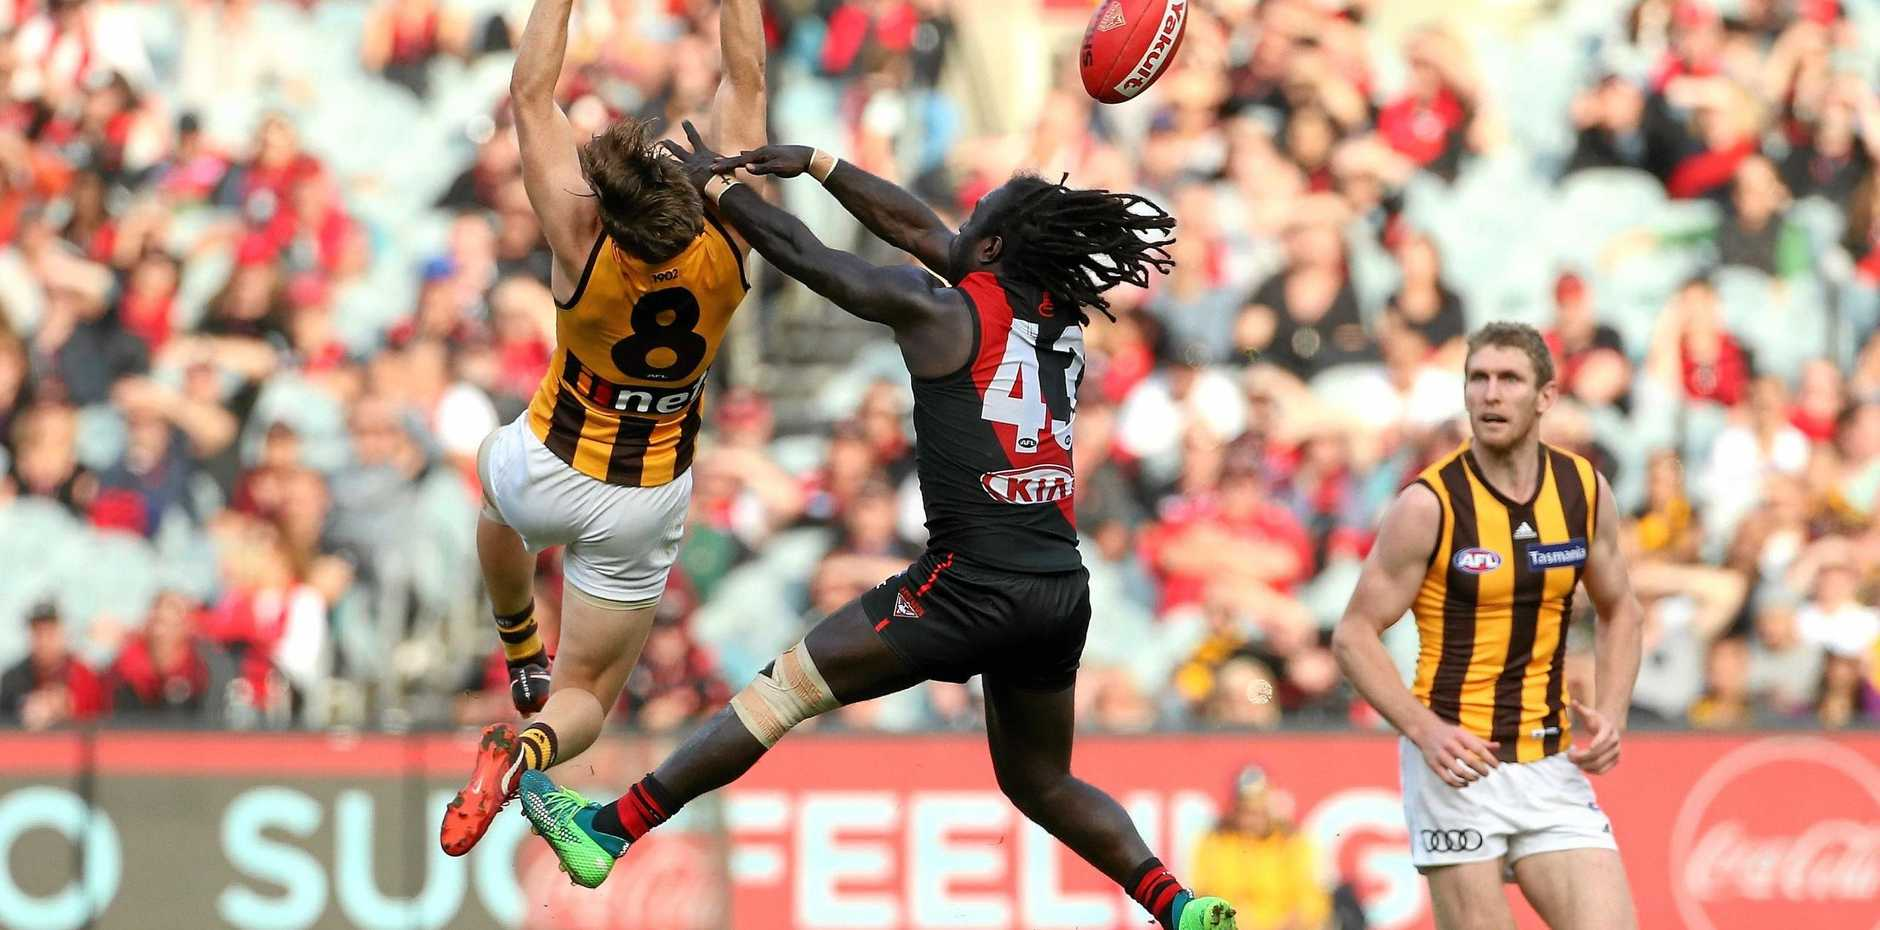 Hawthorn's Taylor Duryea attempts to mark in front of Essendon's Anthony McDonald-Tipungwuti at the MCG on Saturday. Picture: Hamish Blair/AAP